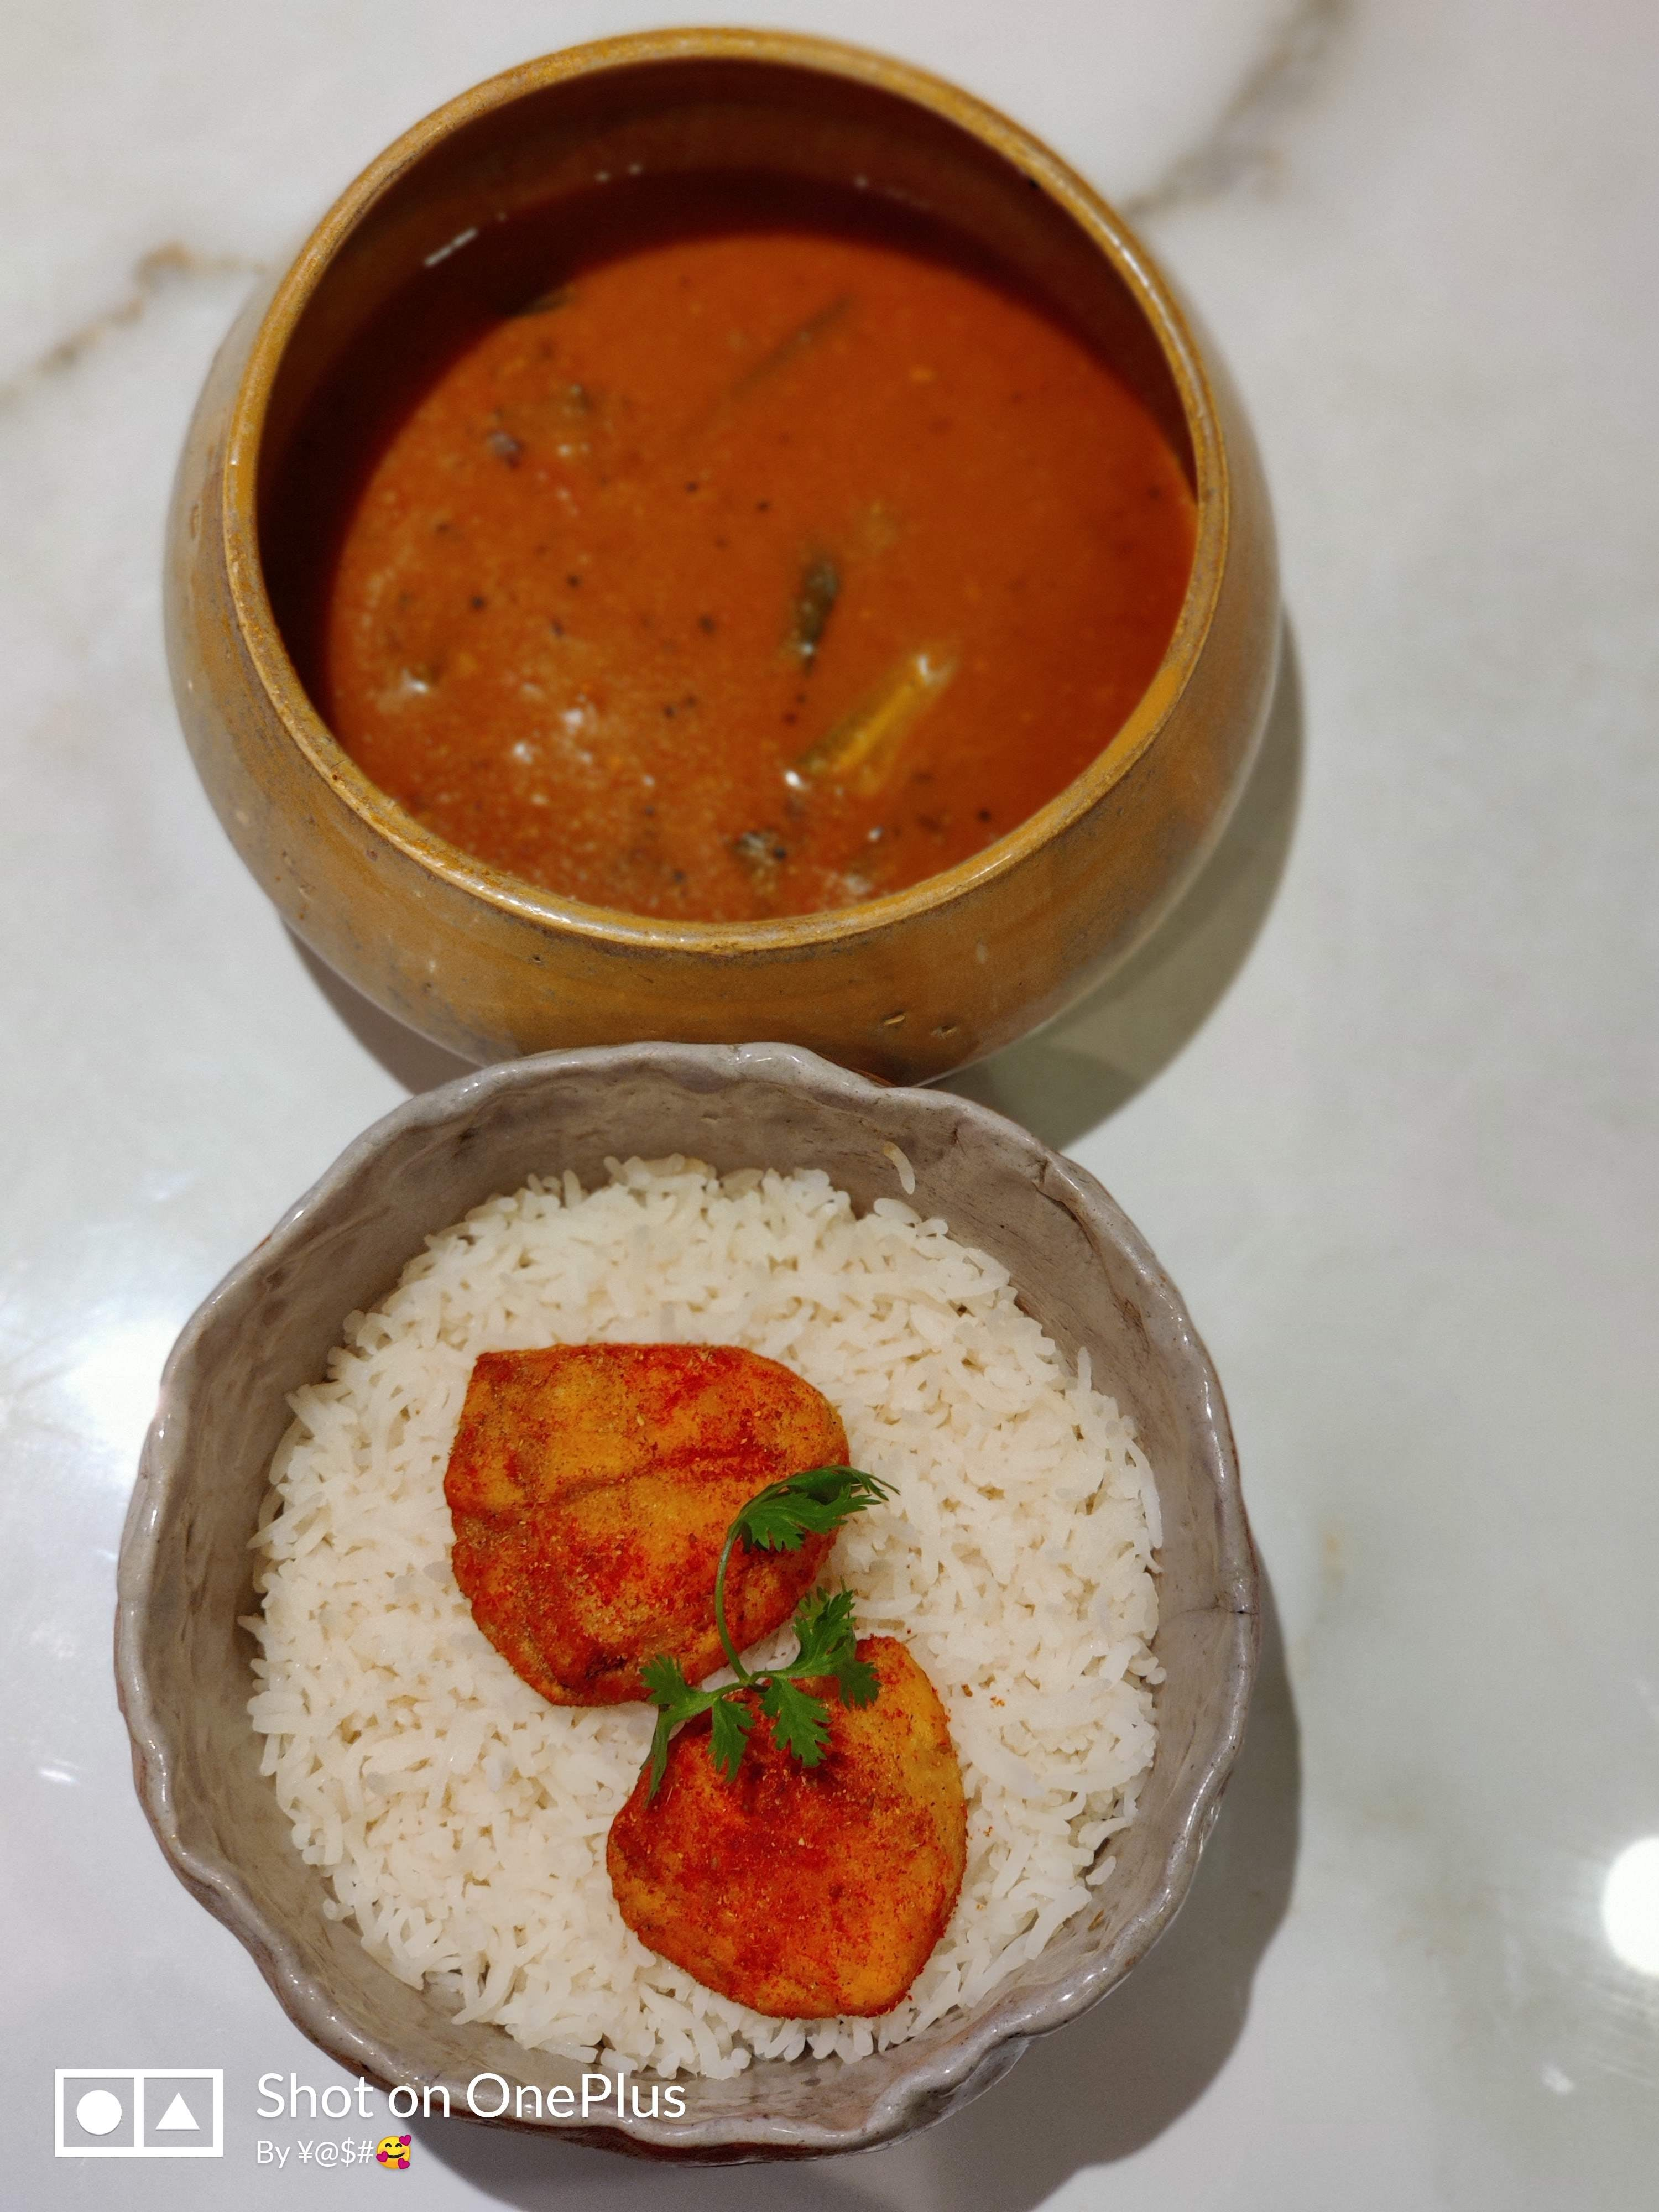 Dish,Food,Cuisine,Steamed rice,Ingredient,White rice,Meal,Dal,Jasmine rice,Lunch